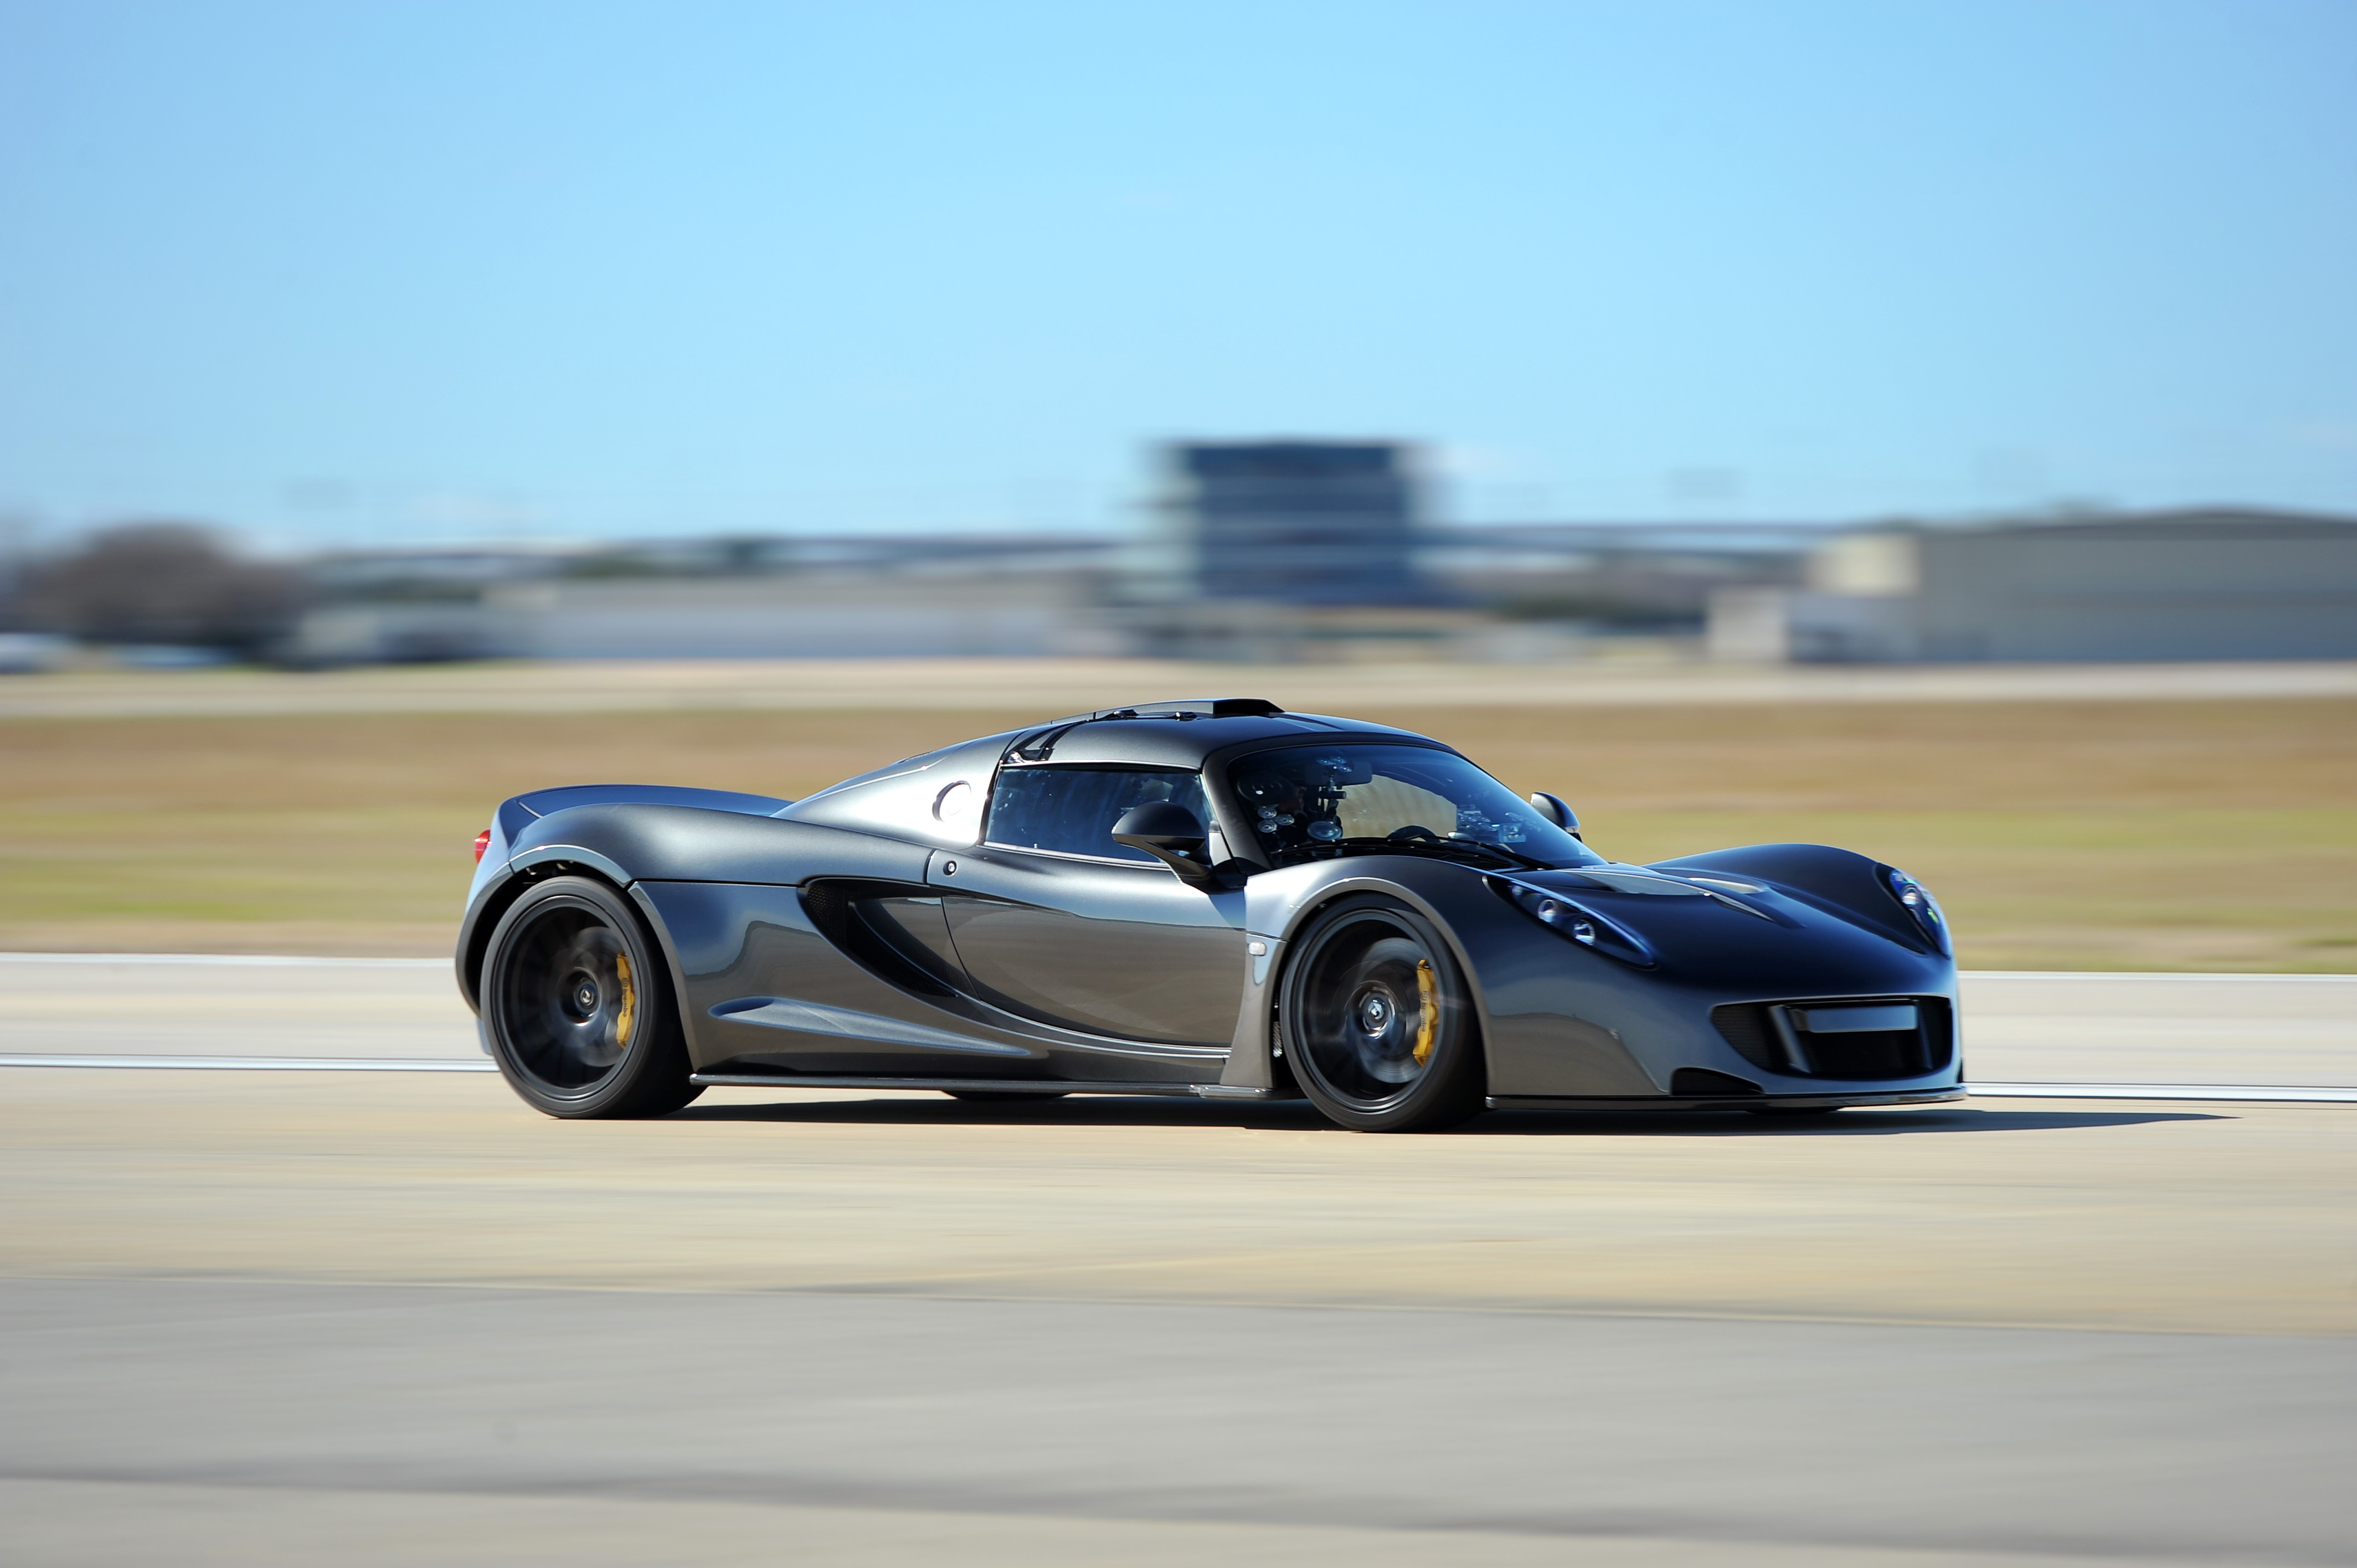 ... Fastest street-legal production car in the world Hennessey Venom GT